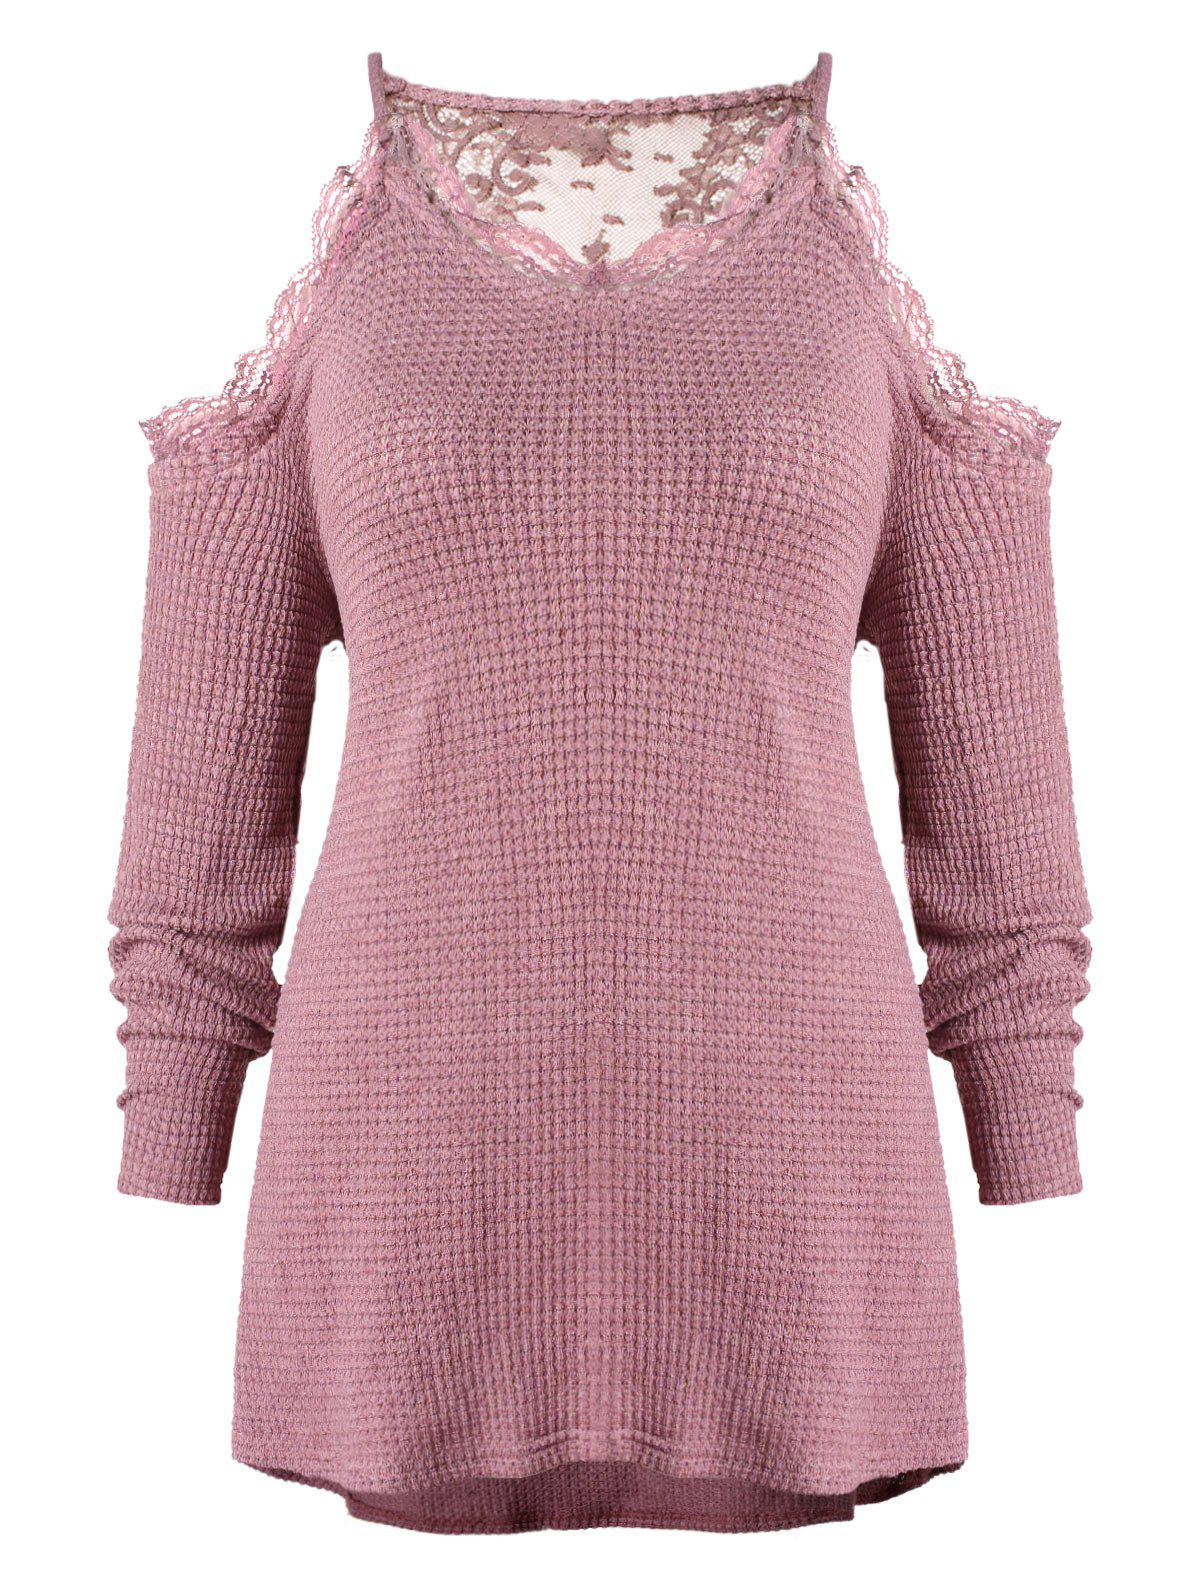 Fashion Plus Size Lace Trim Open Shoulder Knitwear